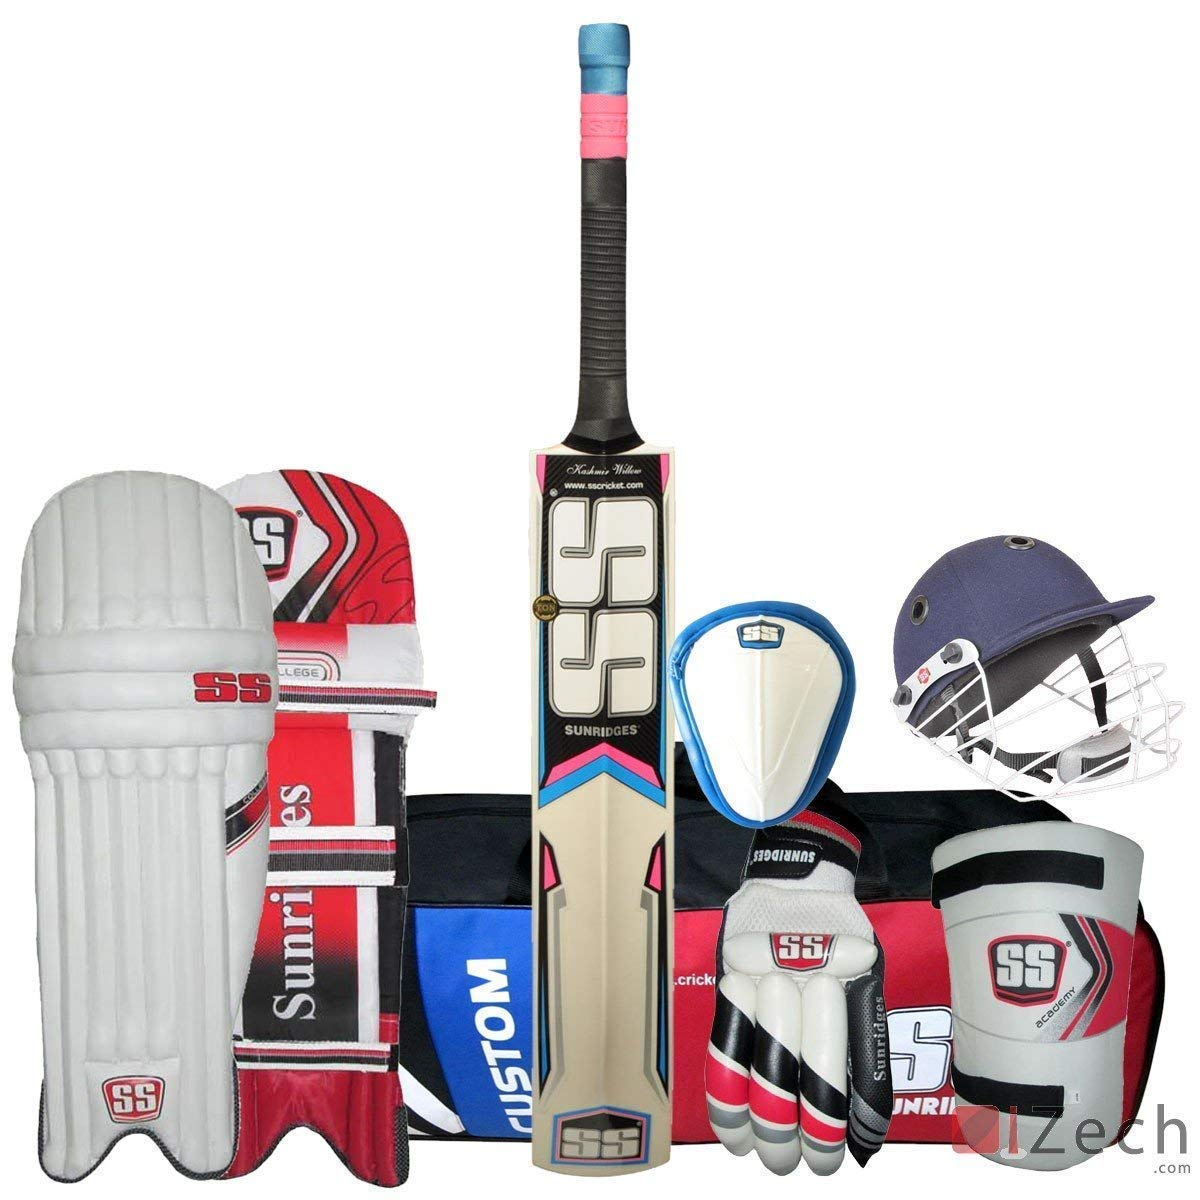 SS Economy Complete Cricket Kit Mens Size Kashmir Willow Bat Fast DELIVERY